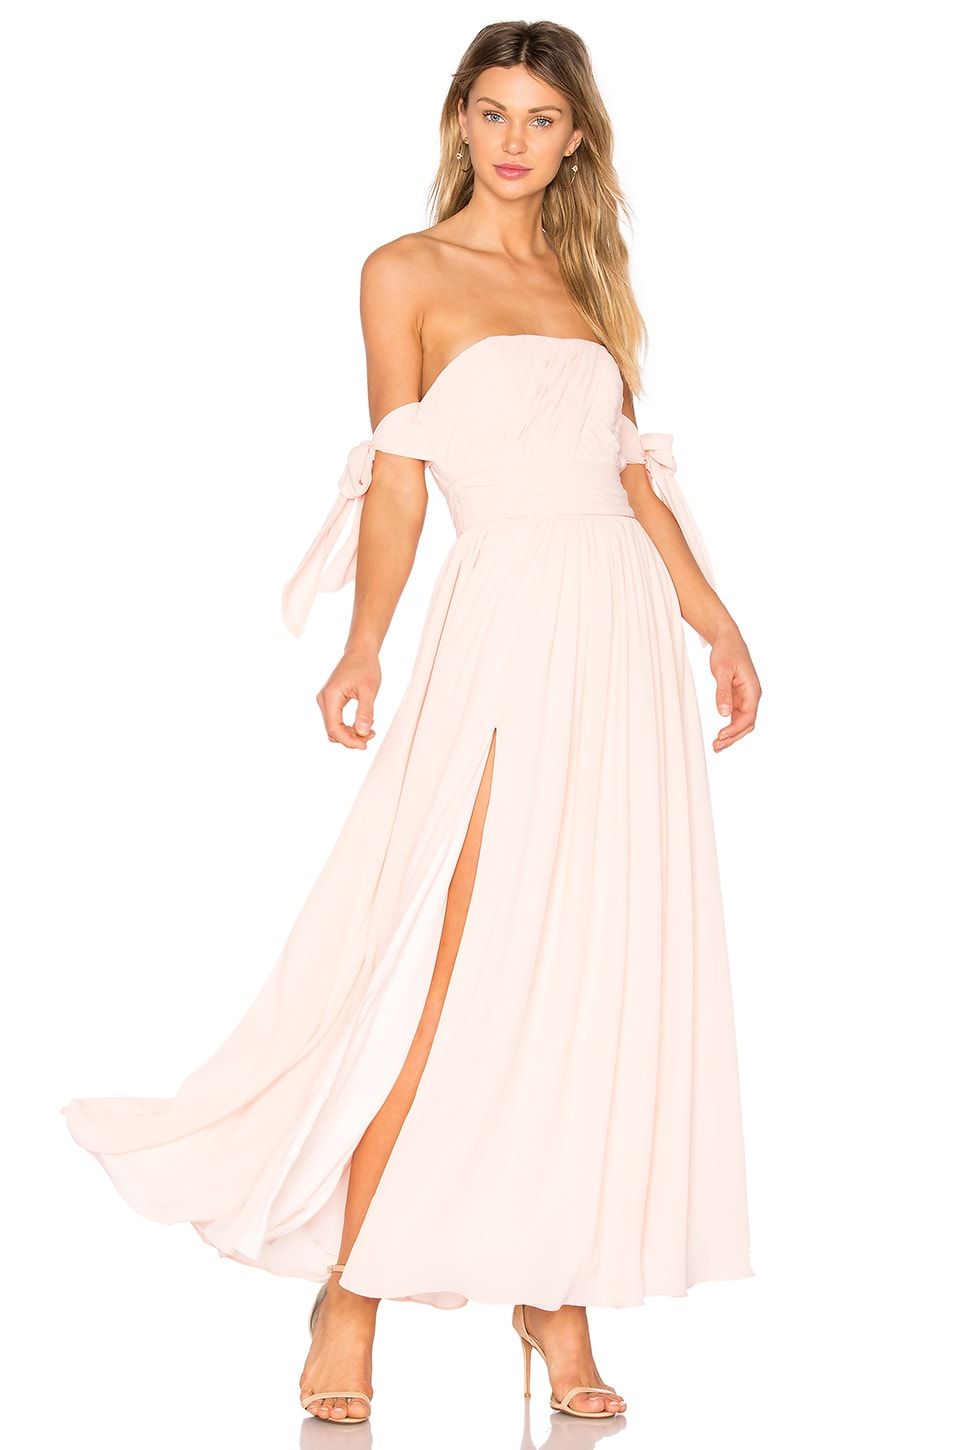 Photo of X REVOLVE Sandra Maxi Dress in Pale Link by Fame And Partners on sale